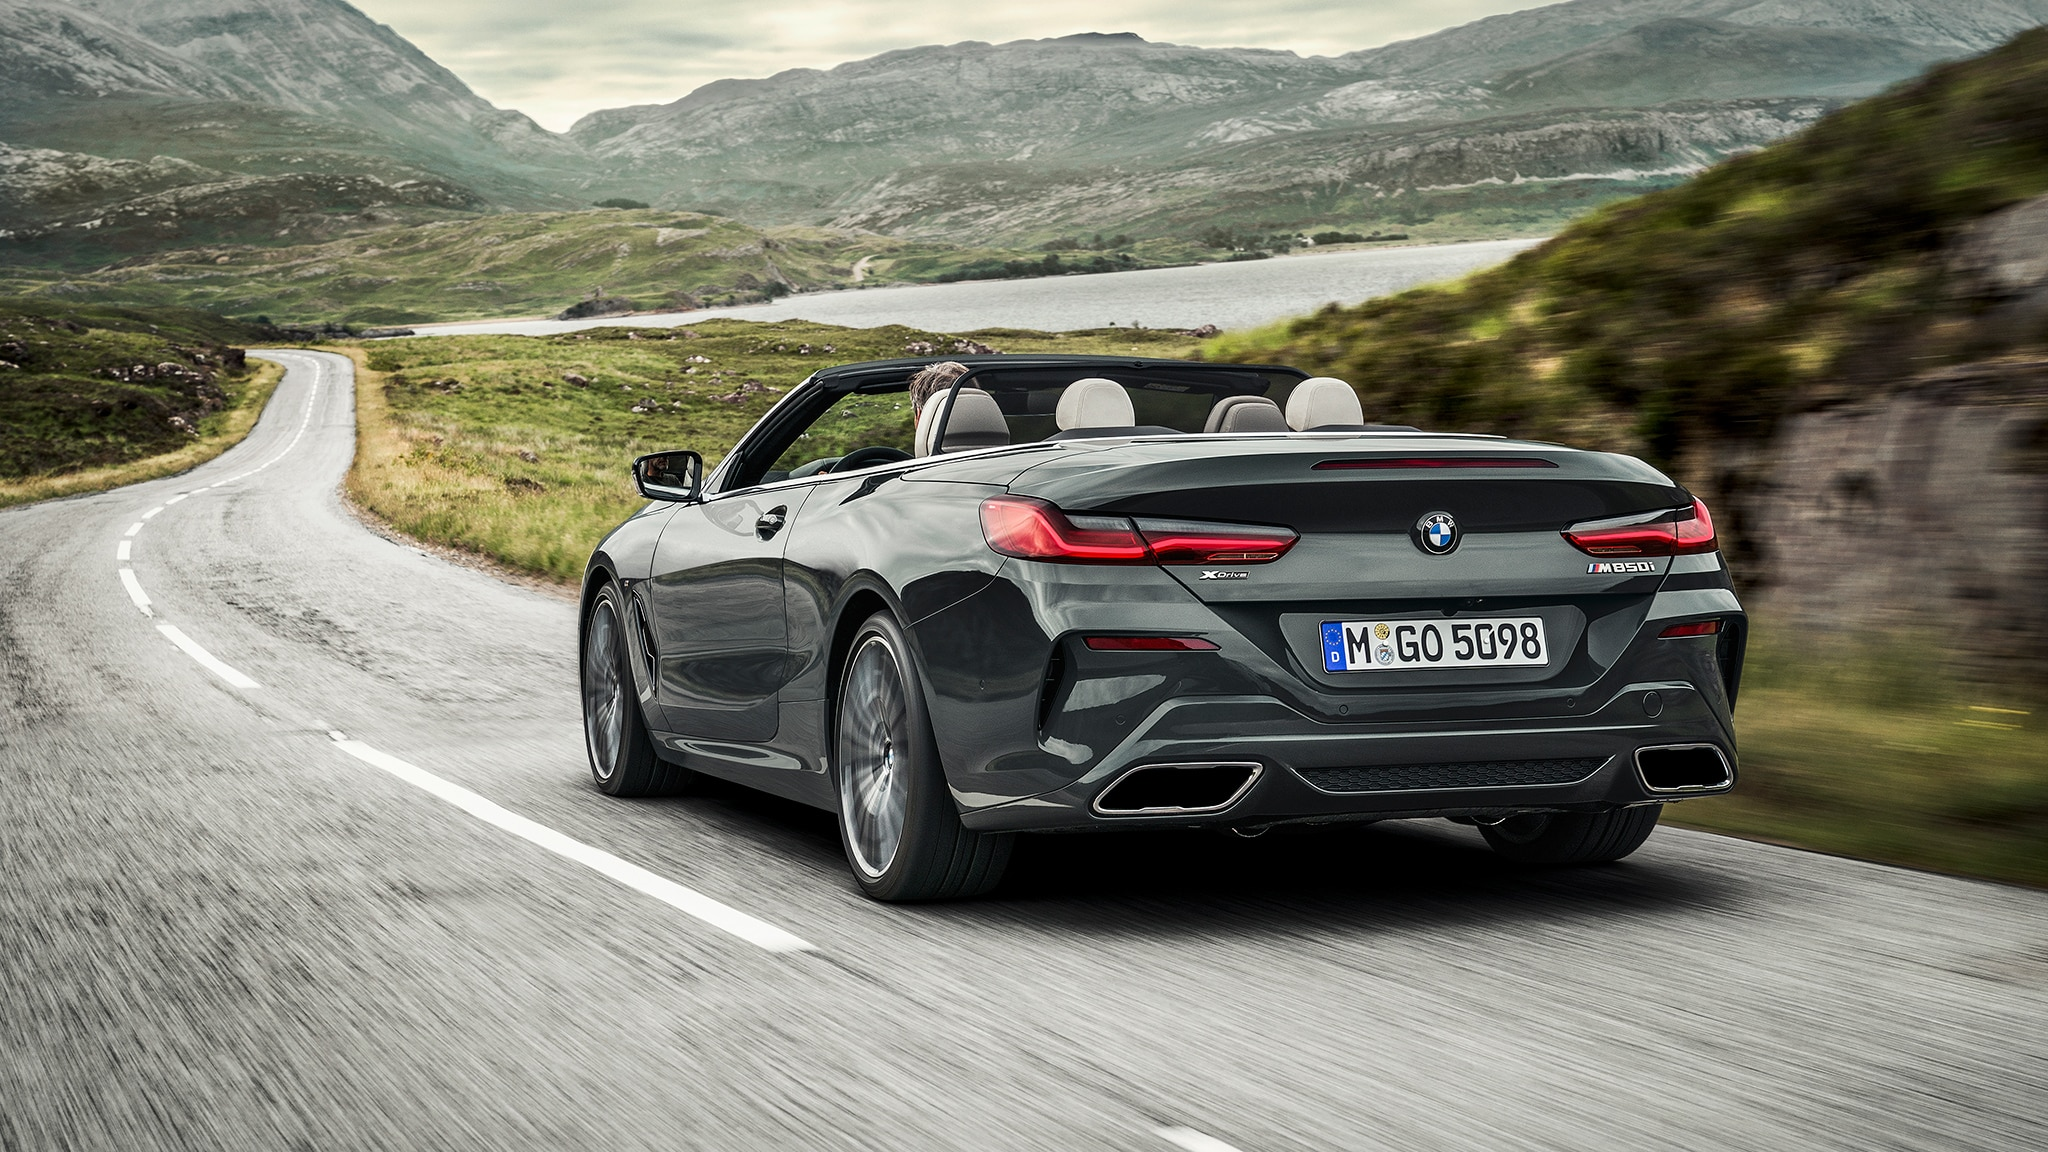 2019 BMW M850i Convertible Rear Side Motion View Road Ahead